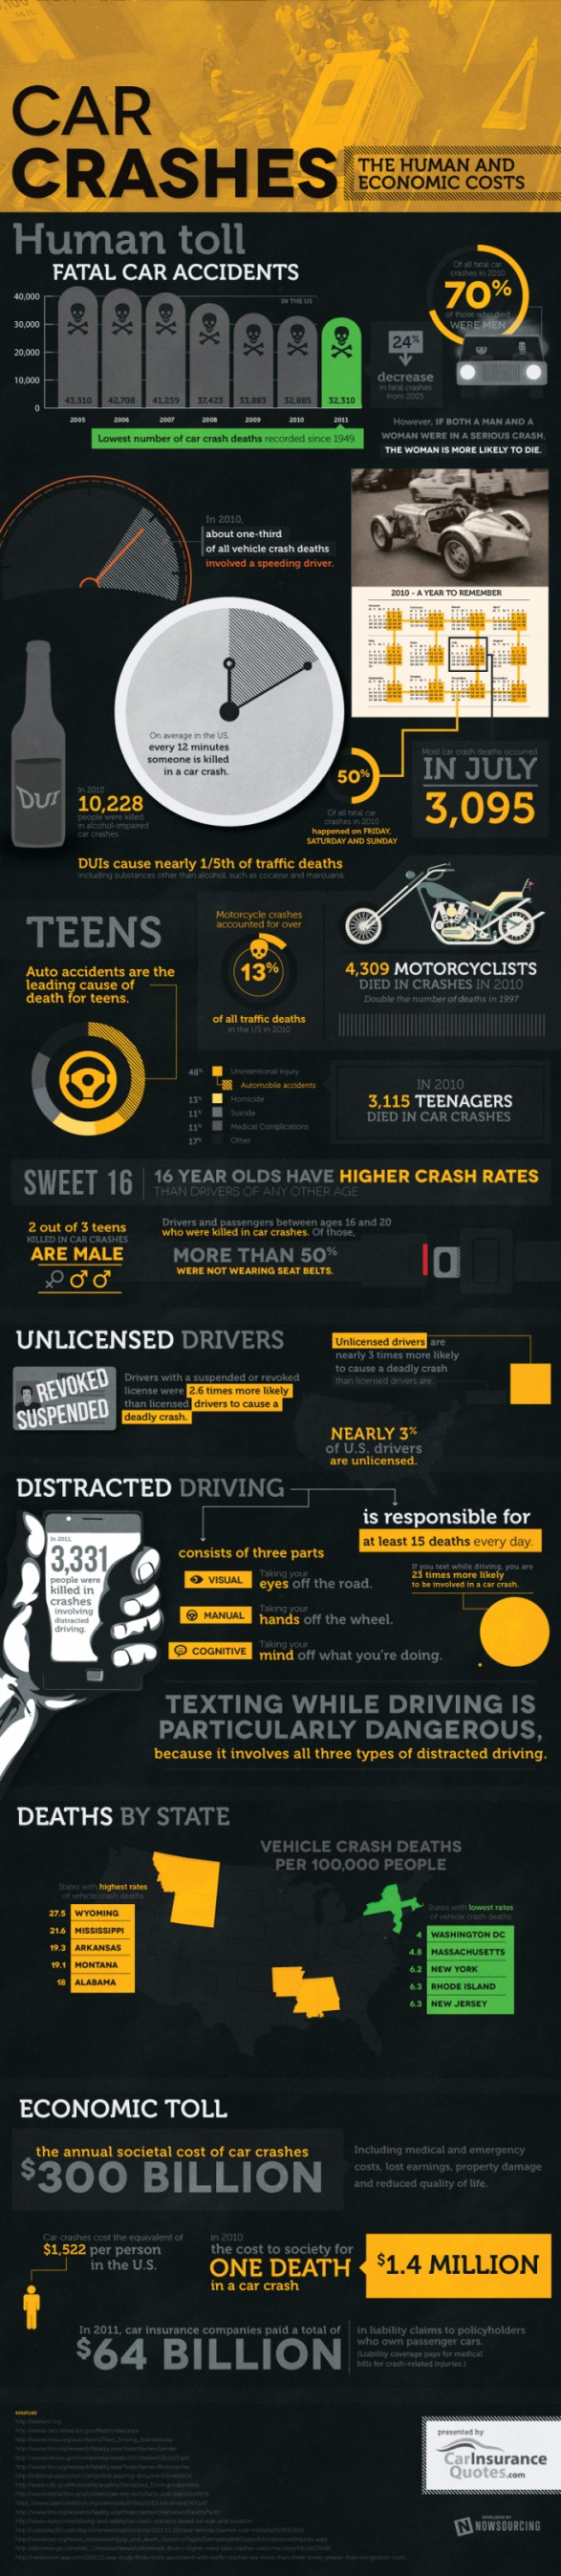 The Human and Economic Costs of Car Crashes